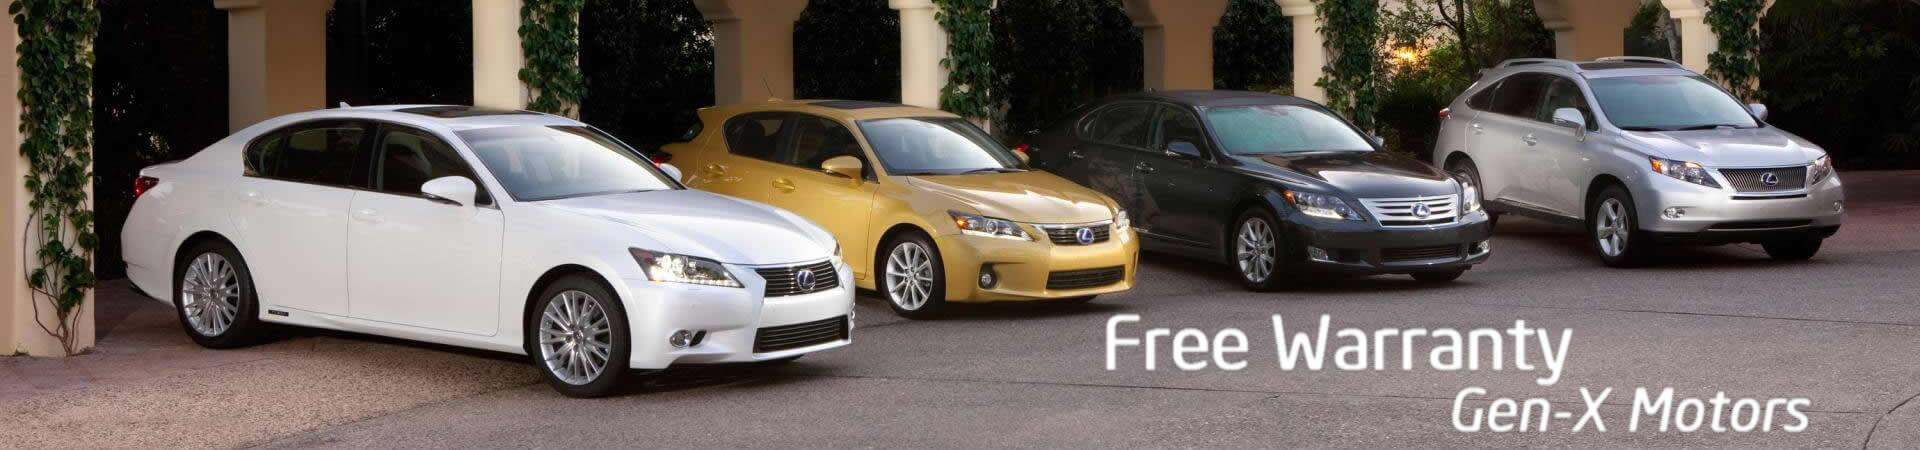 Used Vehicles in Melbourne, FL